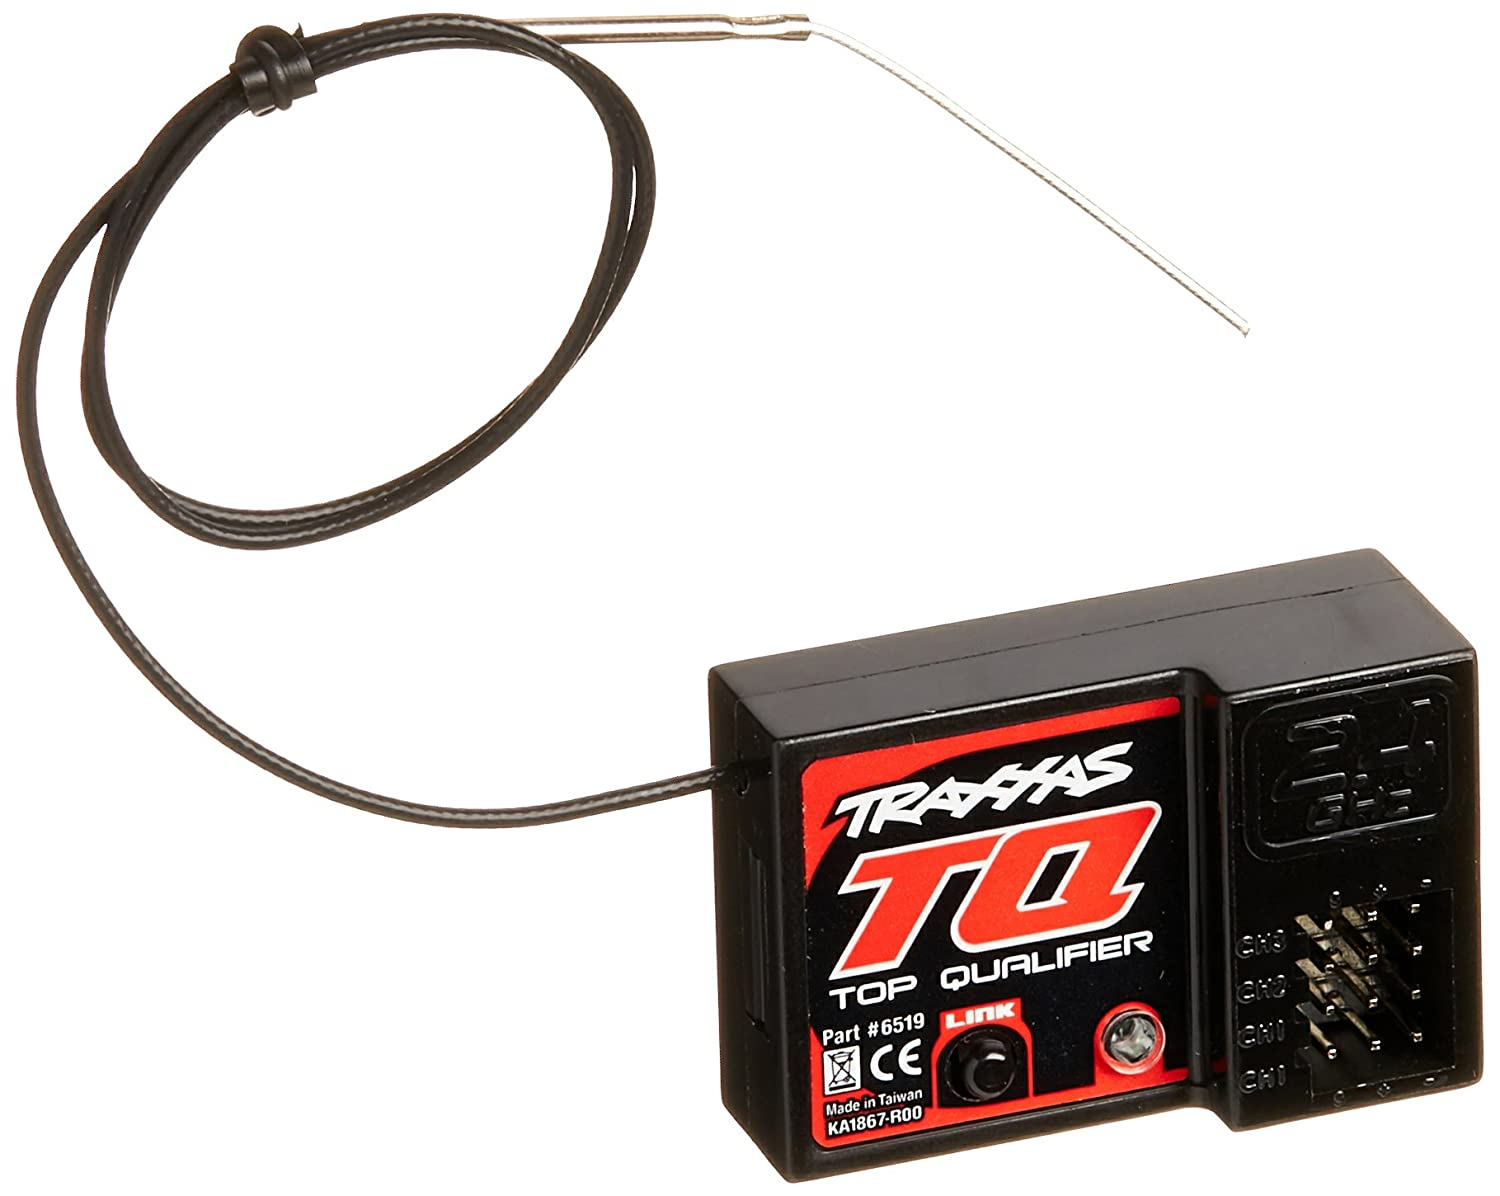 71TtCioizVL._SL1500_ amazon com traxxas 6519 tq 2 4 ghz micro receiver (3ch) toys & games traxxas tq receiver wiring diagram at alyssarenee.co